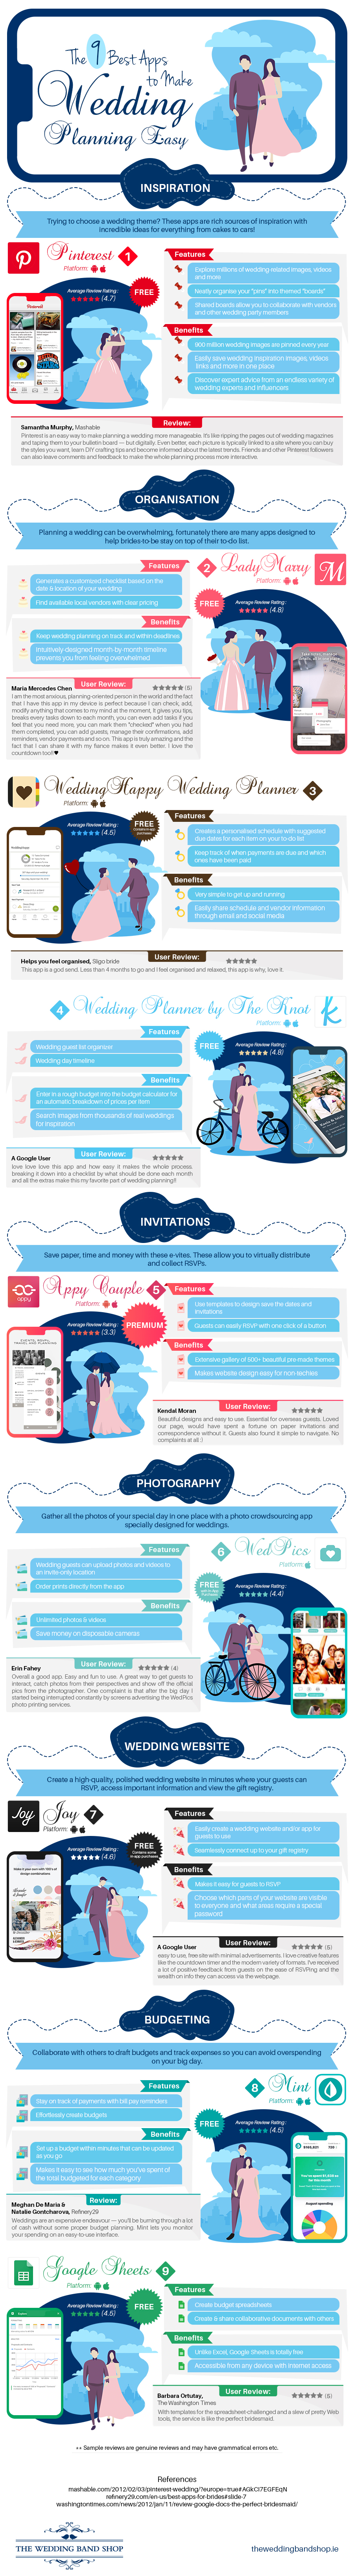 Wedding App Infographic